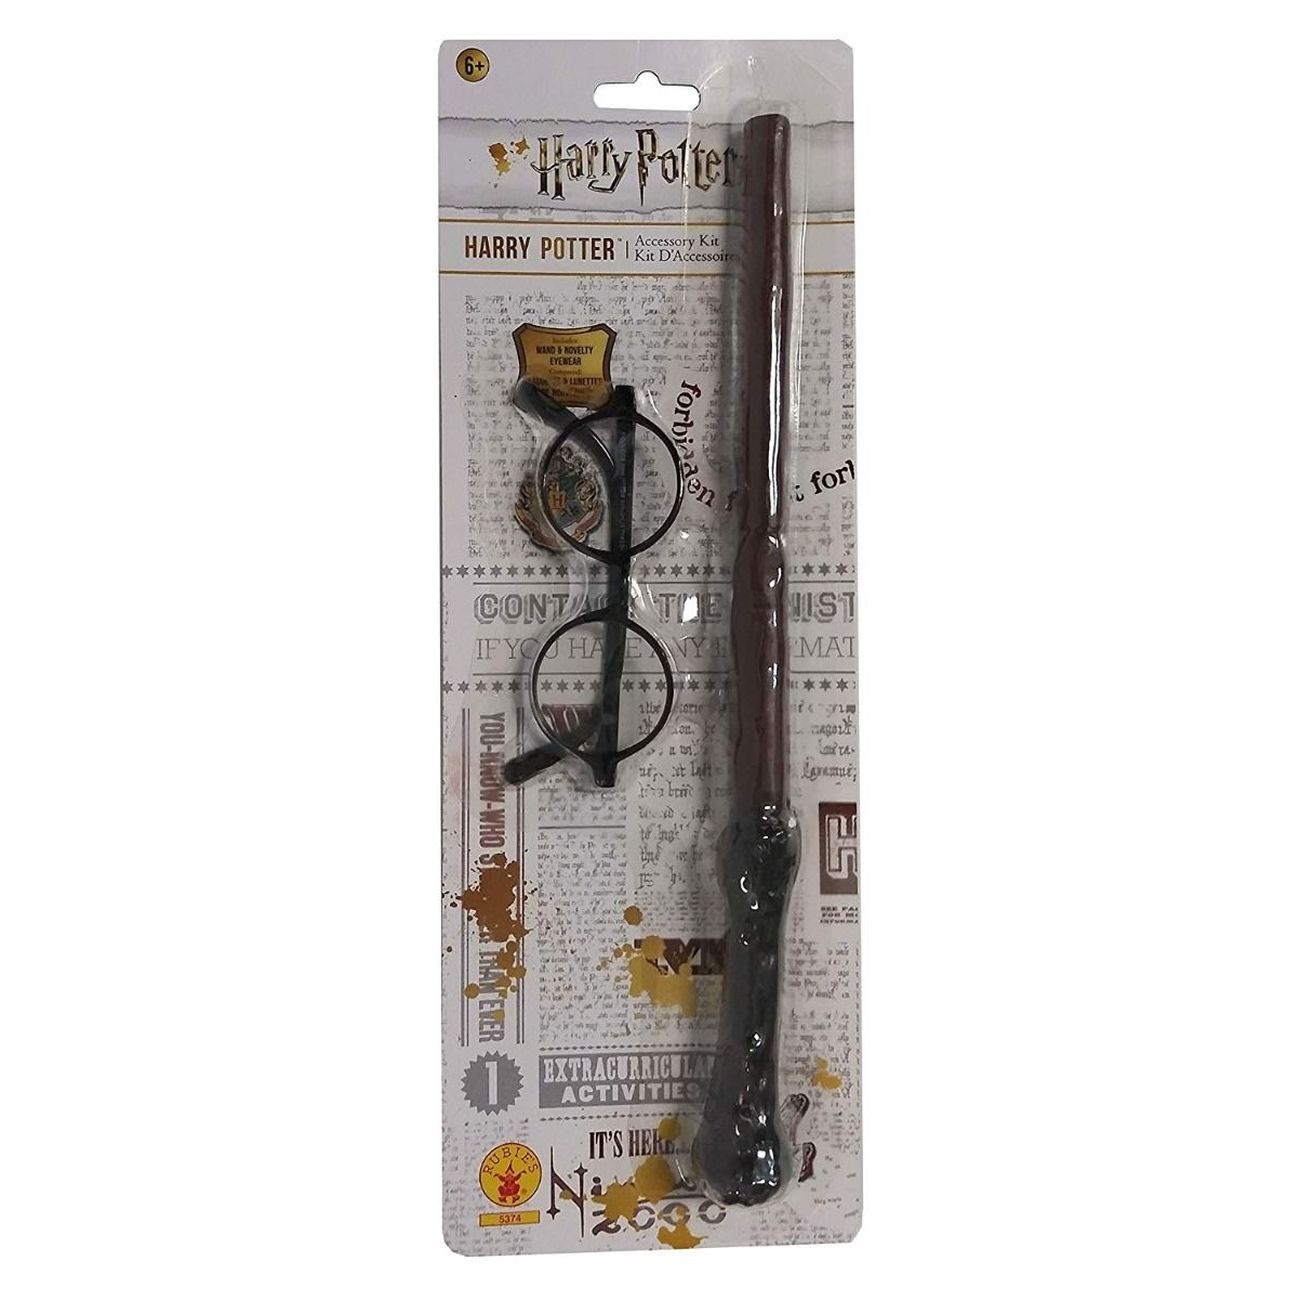 HARRY POTTER GLASSES AND WAND COSTUME ACCESSORY KIT